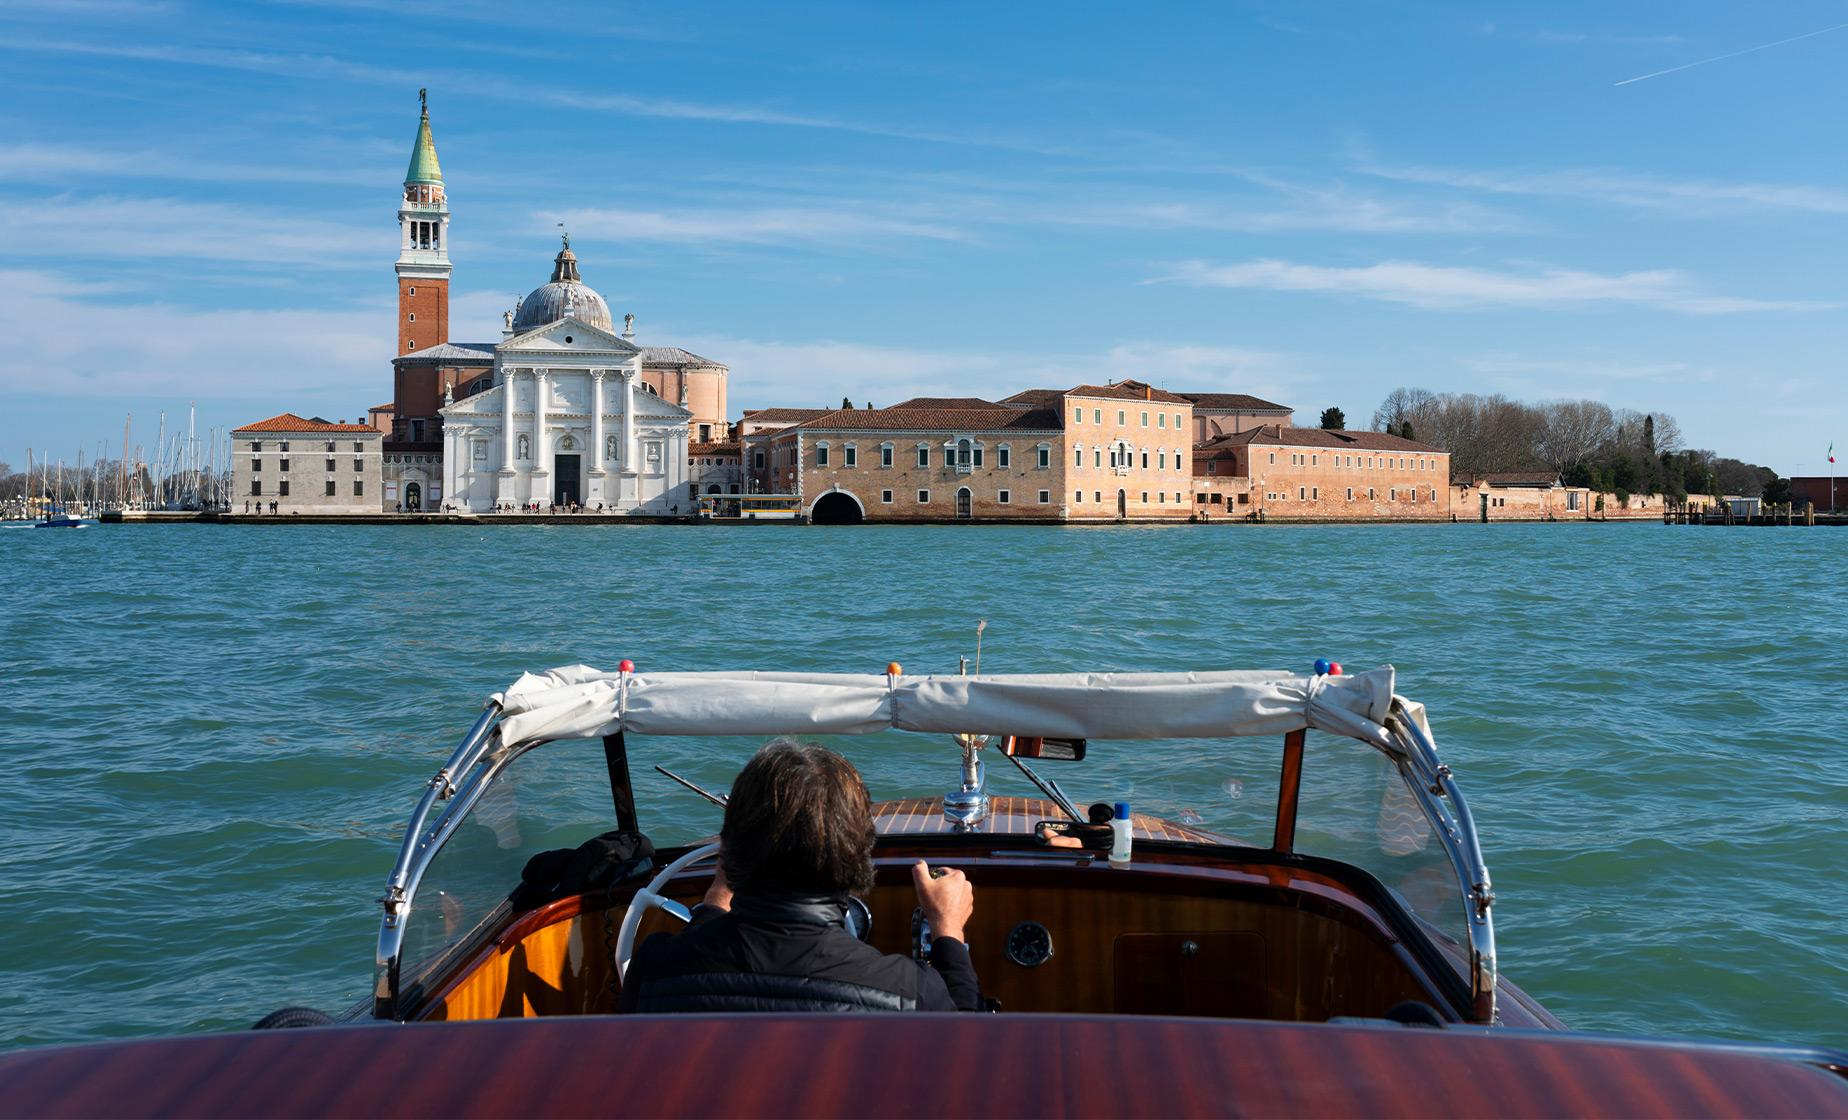 Private Boat Transfer from Venice Pier to Airport